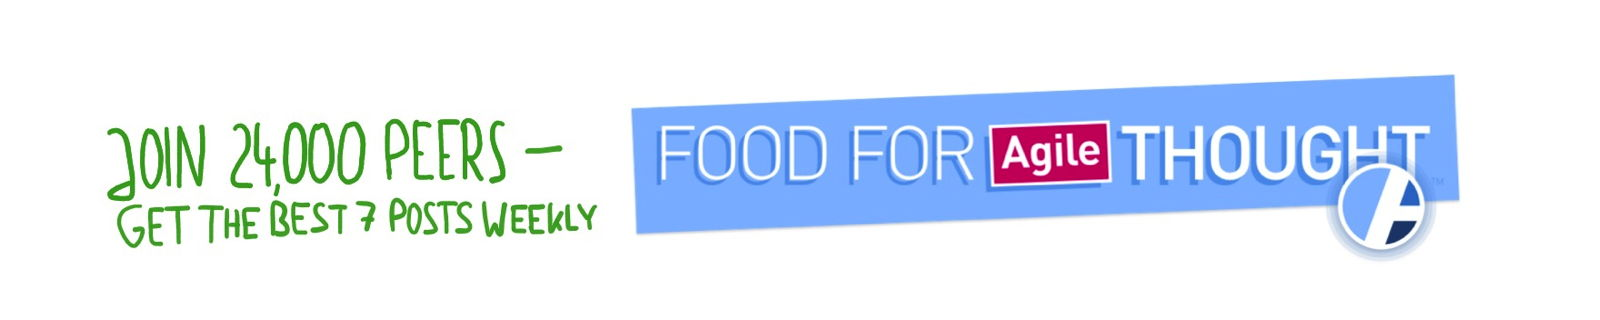 Join 24000 Peers and Subscribe to the Weekly Food for Agile Thought Newsletter by Age-of-Product.com